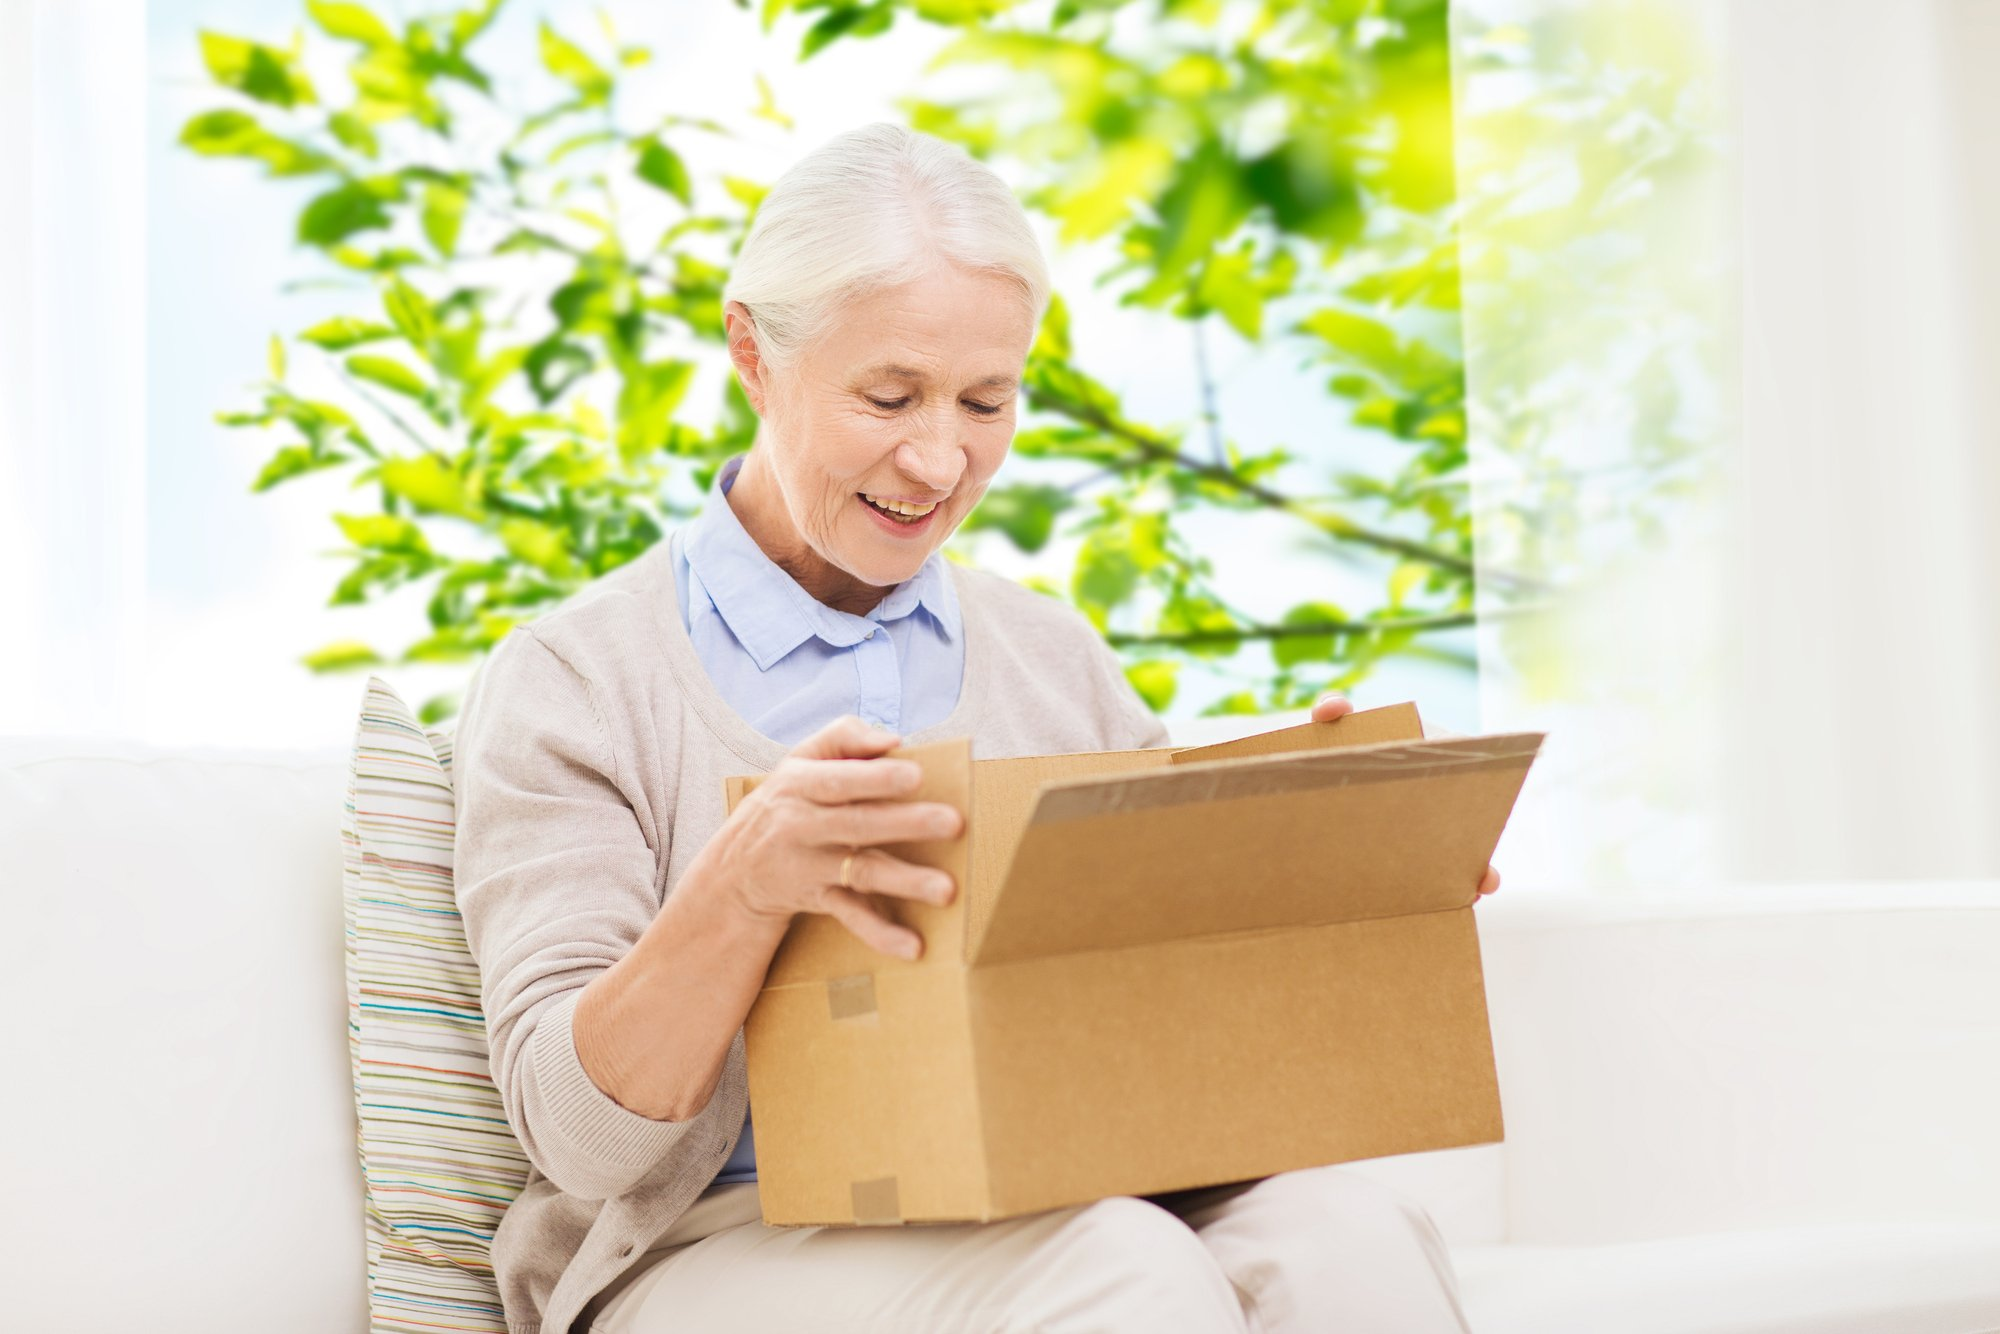 Grandmother delighted to open a care package